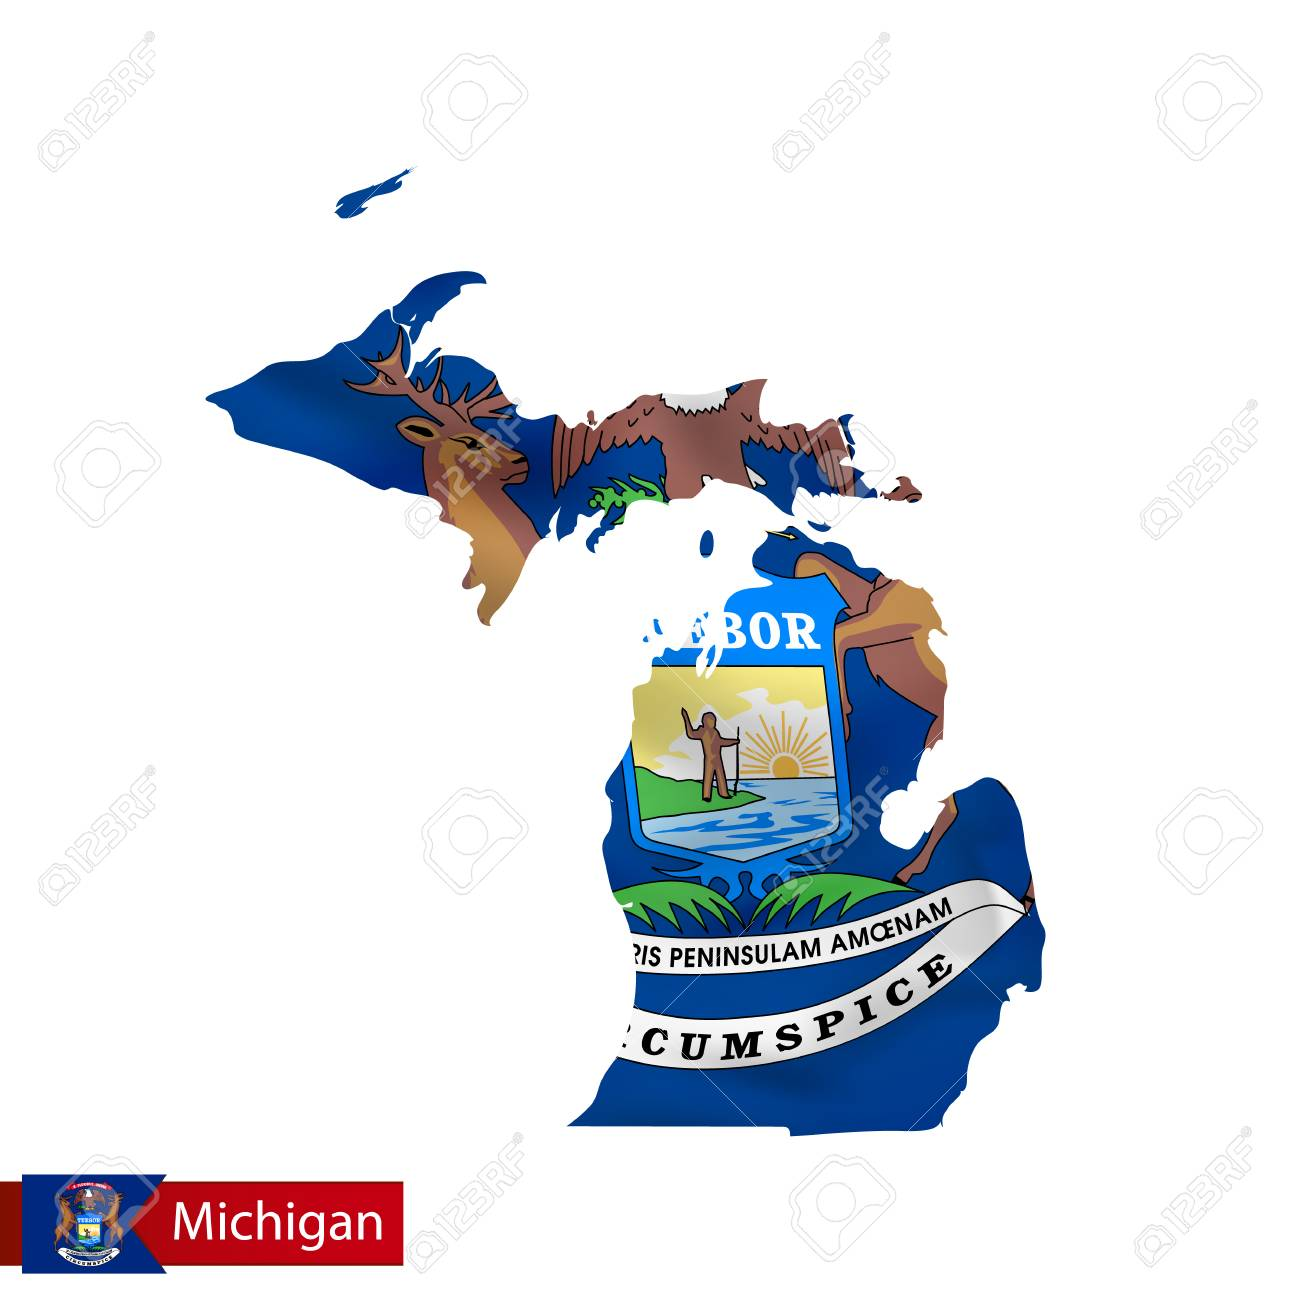 Michigan State Map With Waving Flag Of Us State Vector Illustration - Us-map-michigan-state